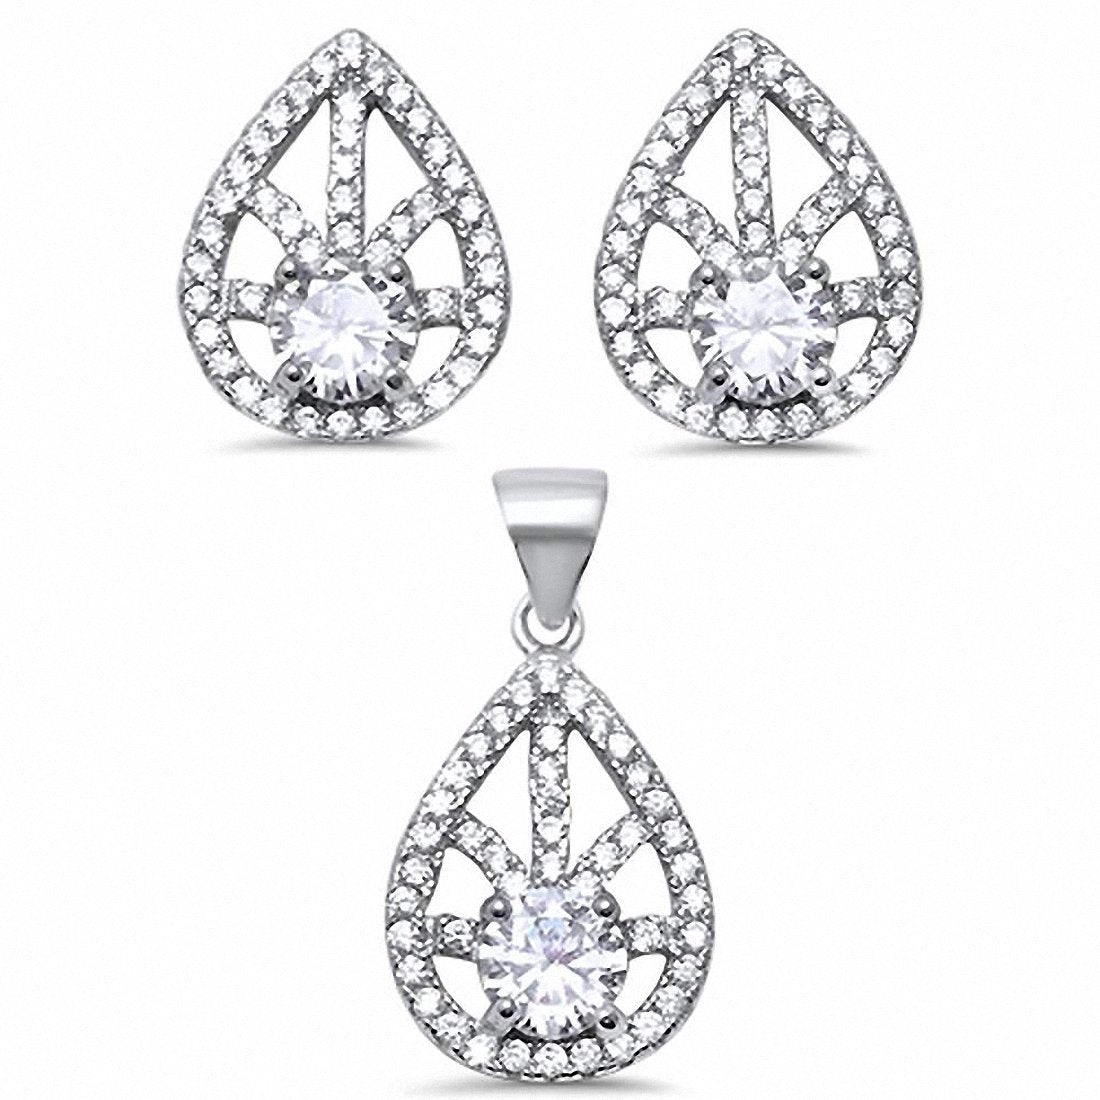 Teardrop Pear Shape Jewelry Set Round Cubic Zirconia 925 Sterling Silver Choose Color